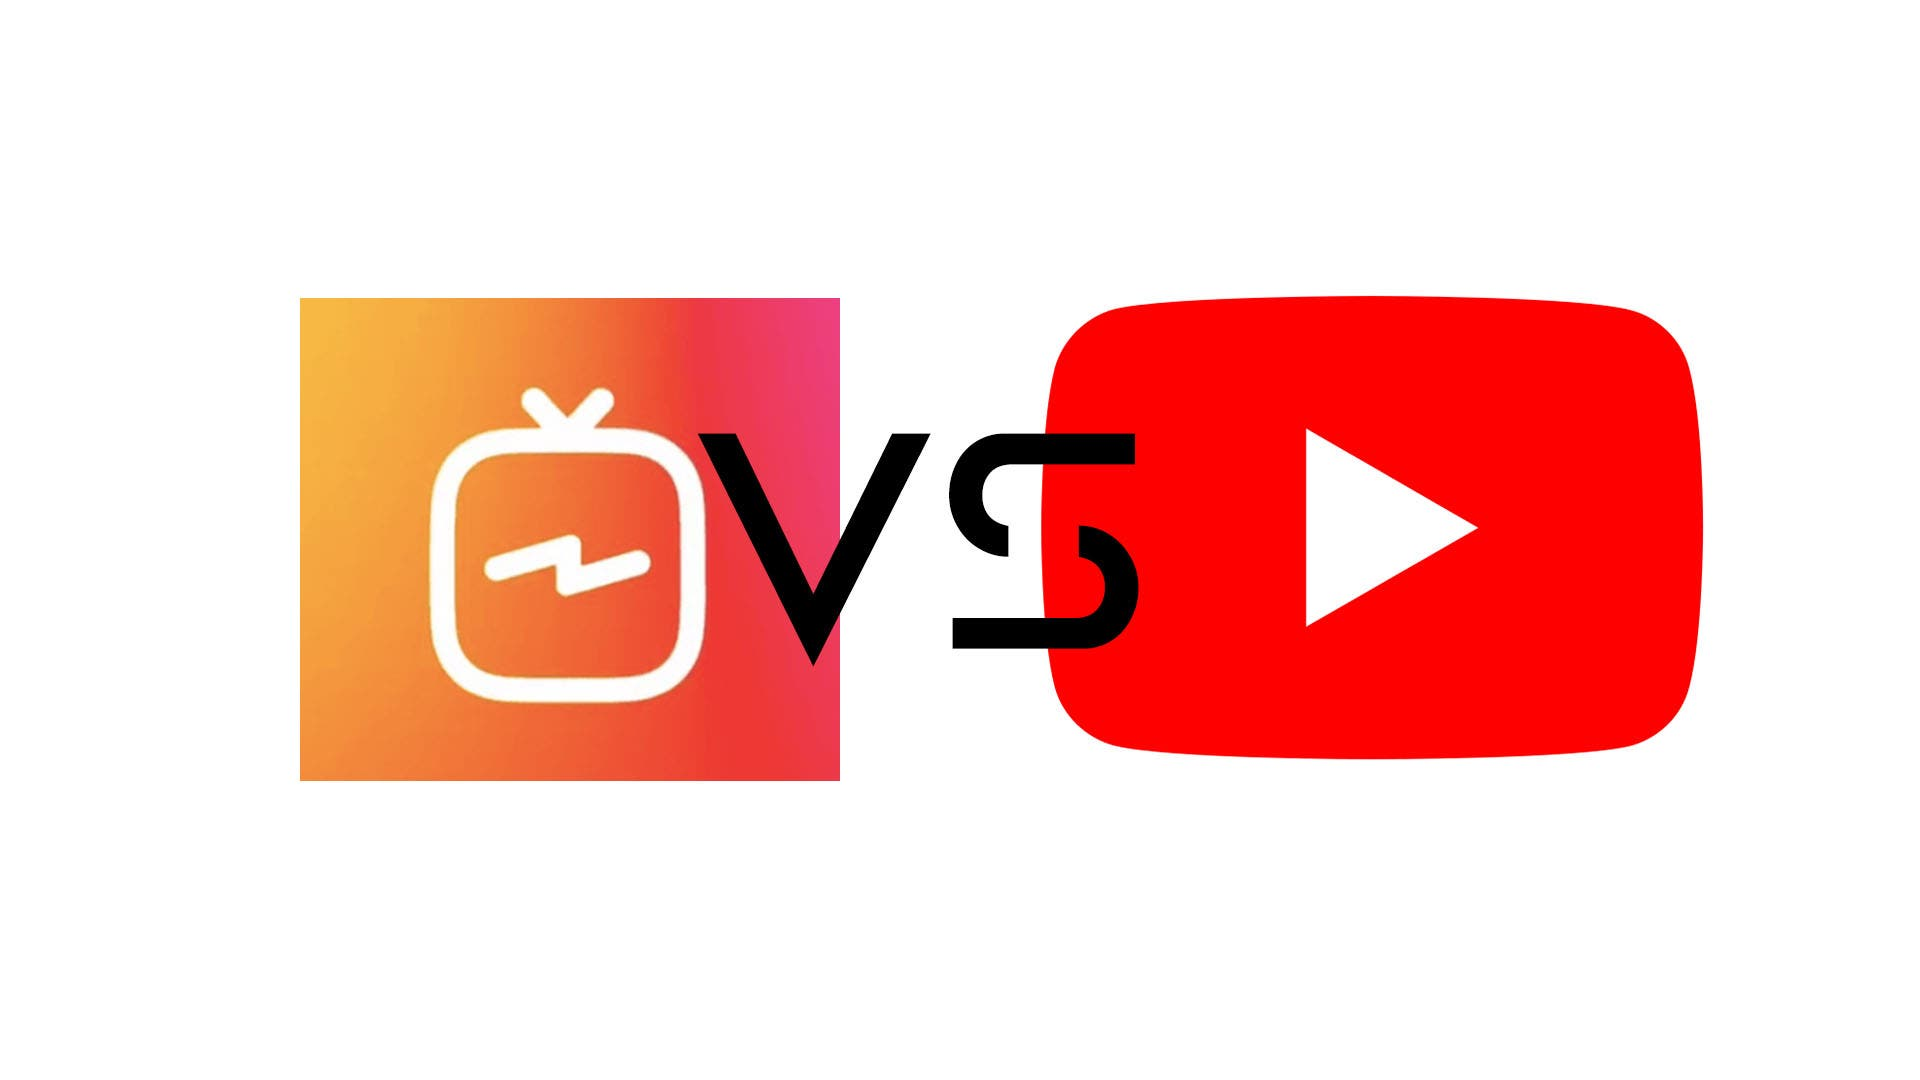 Estas son las diferencias entre IGTV y YouTube